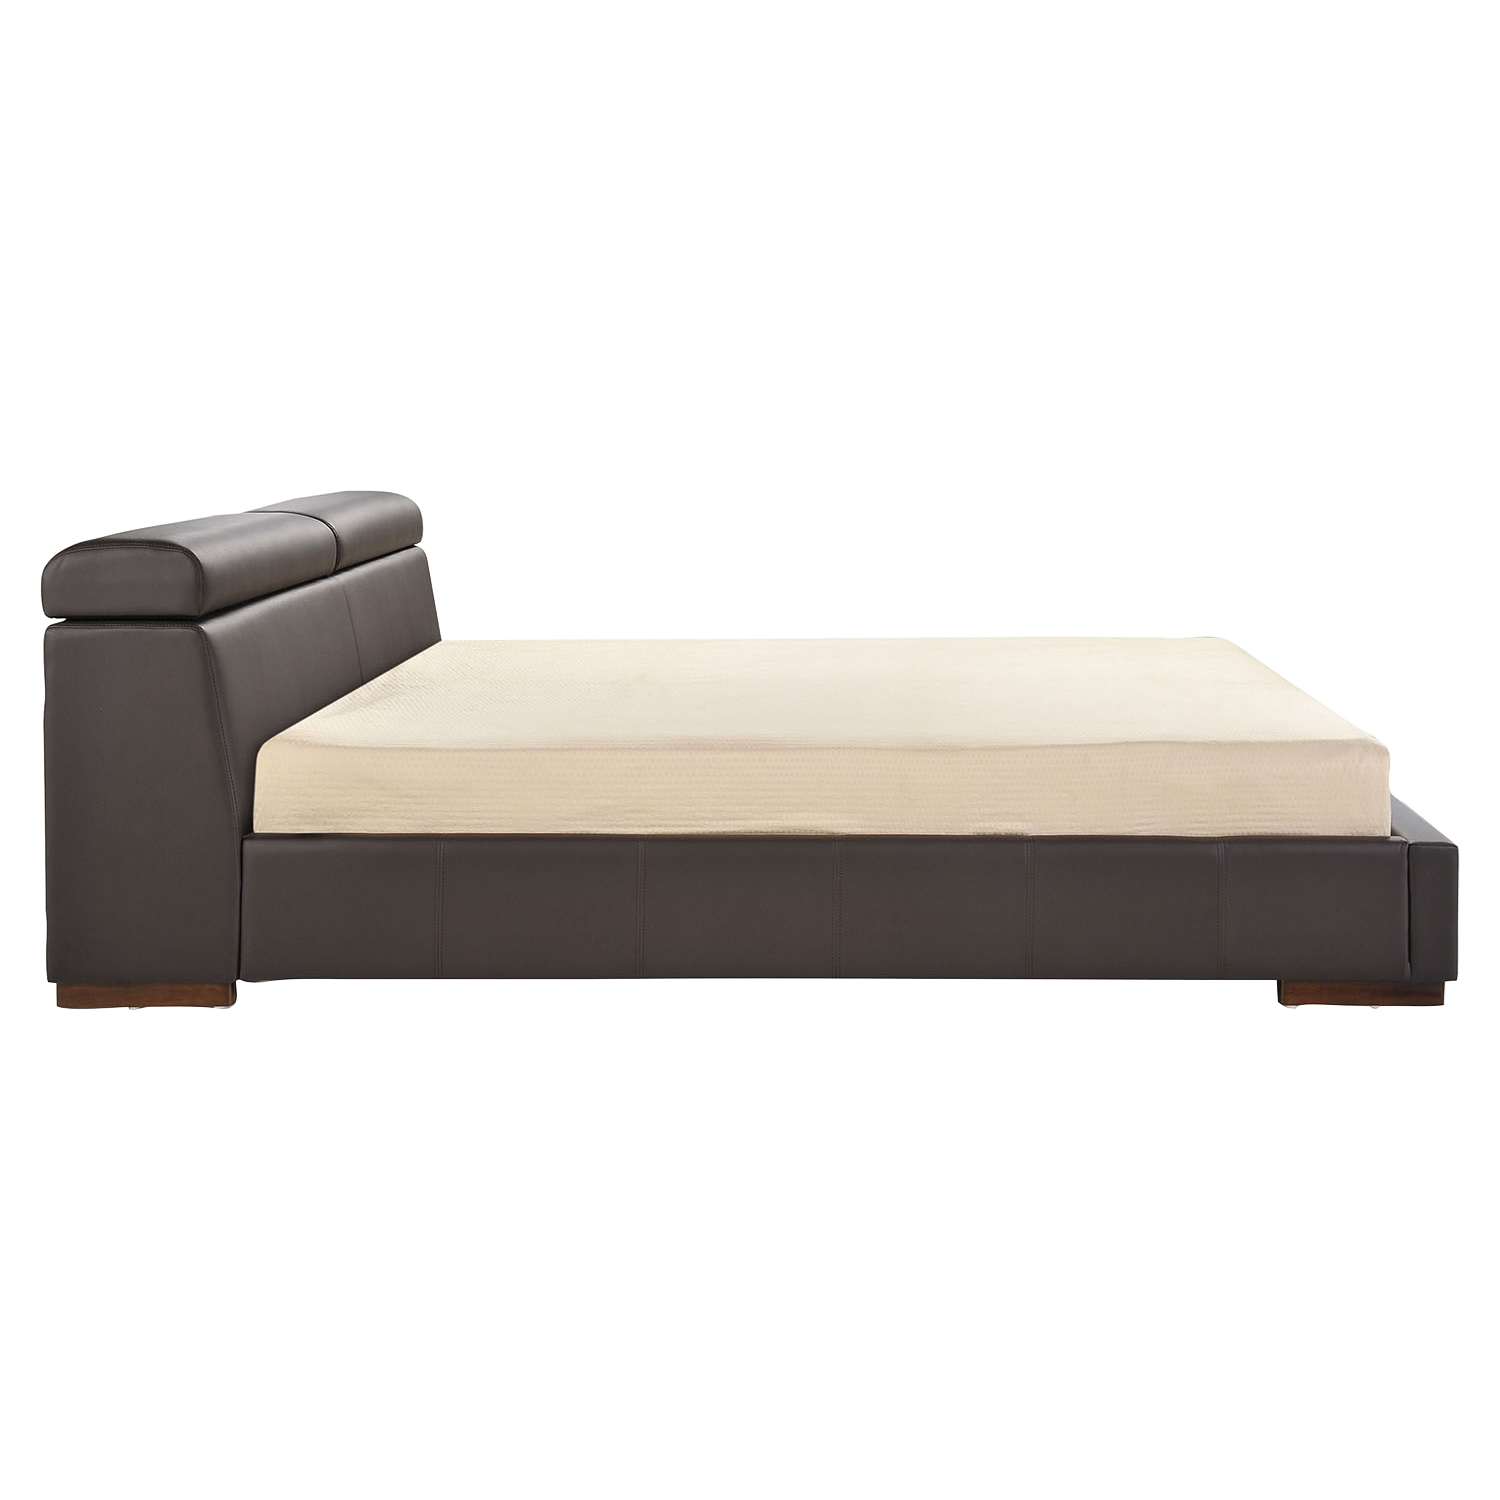 Godard Bed - Espresso - ZM-8002-ES-BED